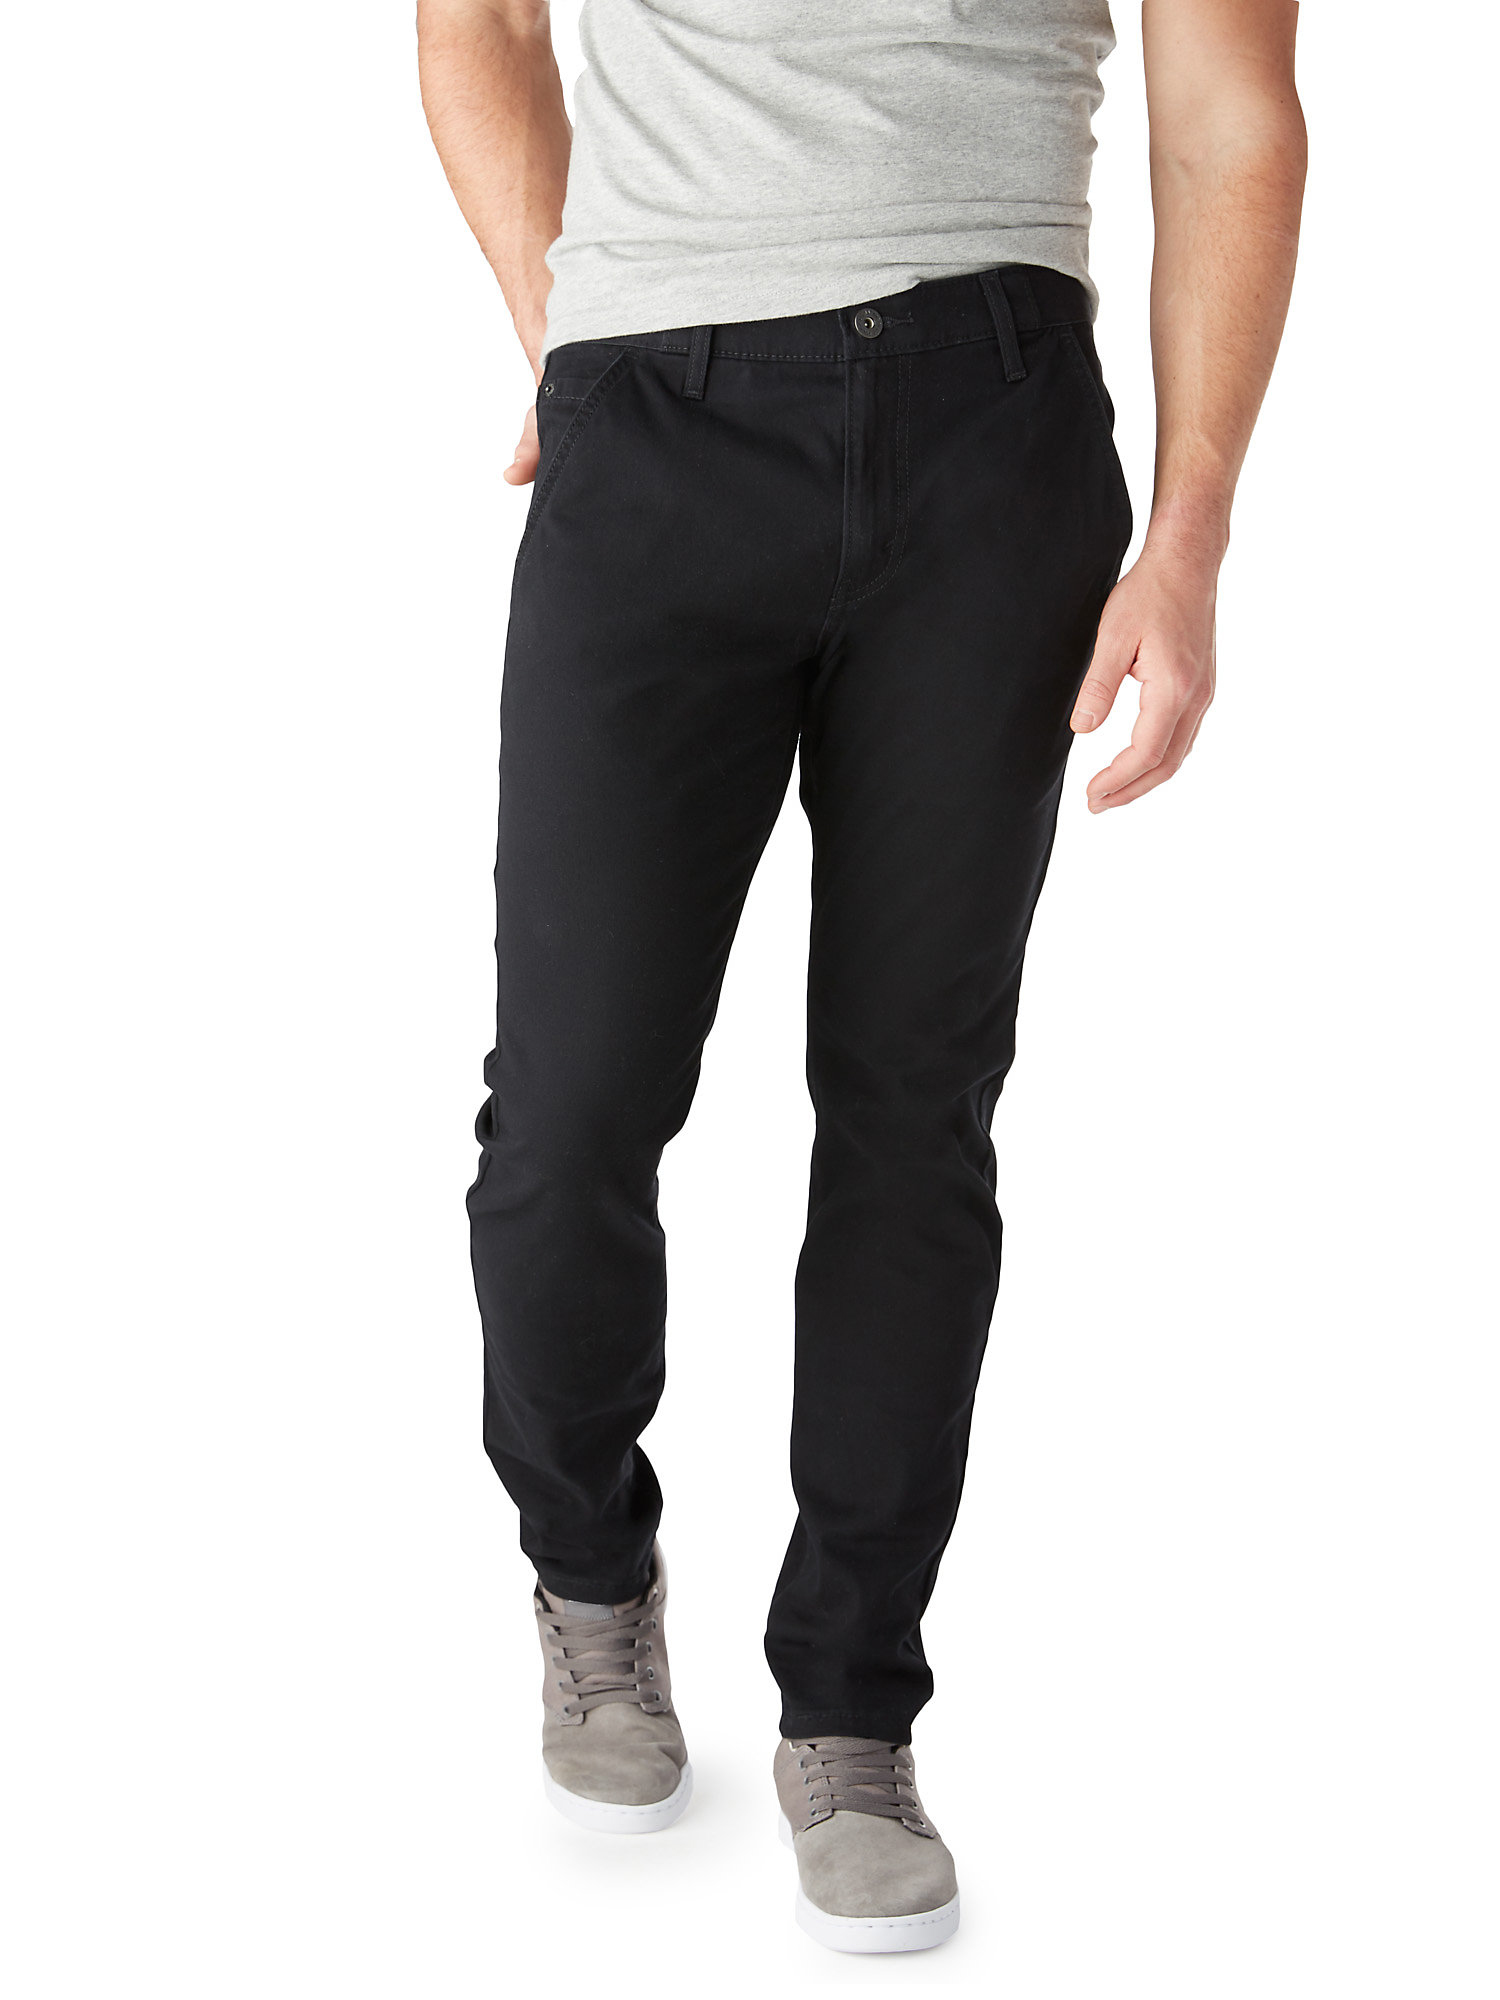 Men's Action Slim Jeans